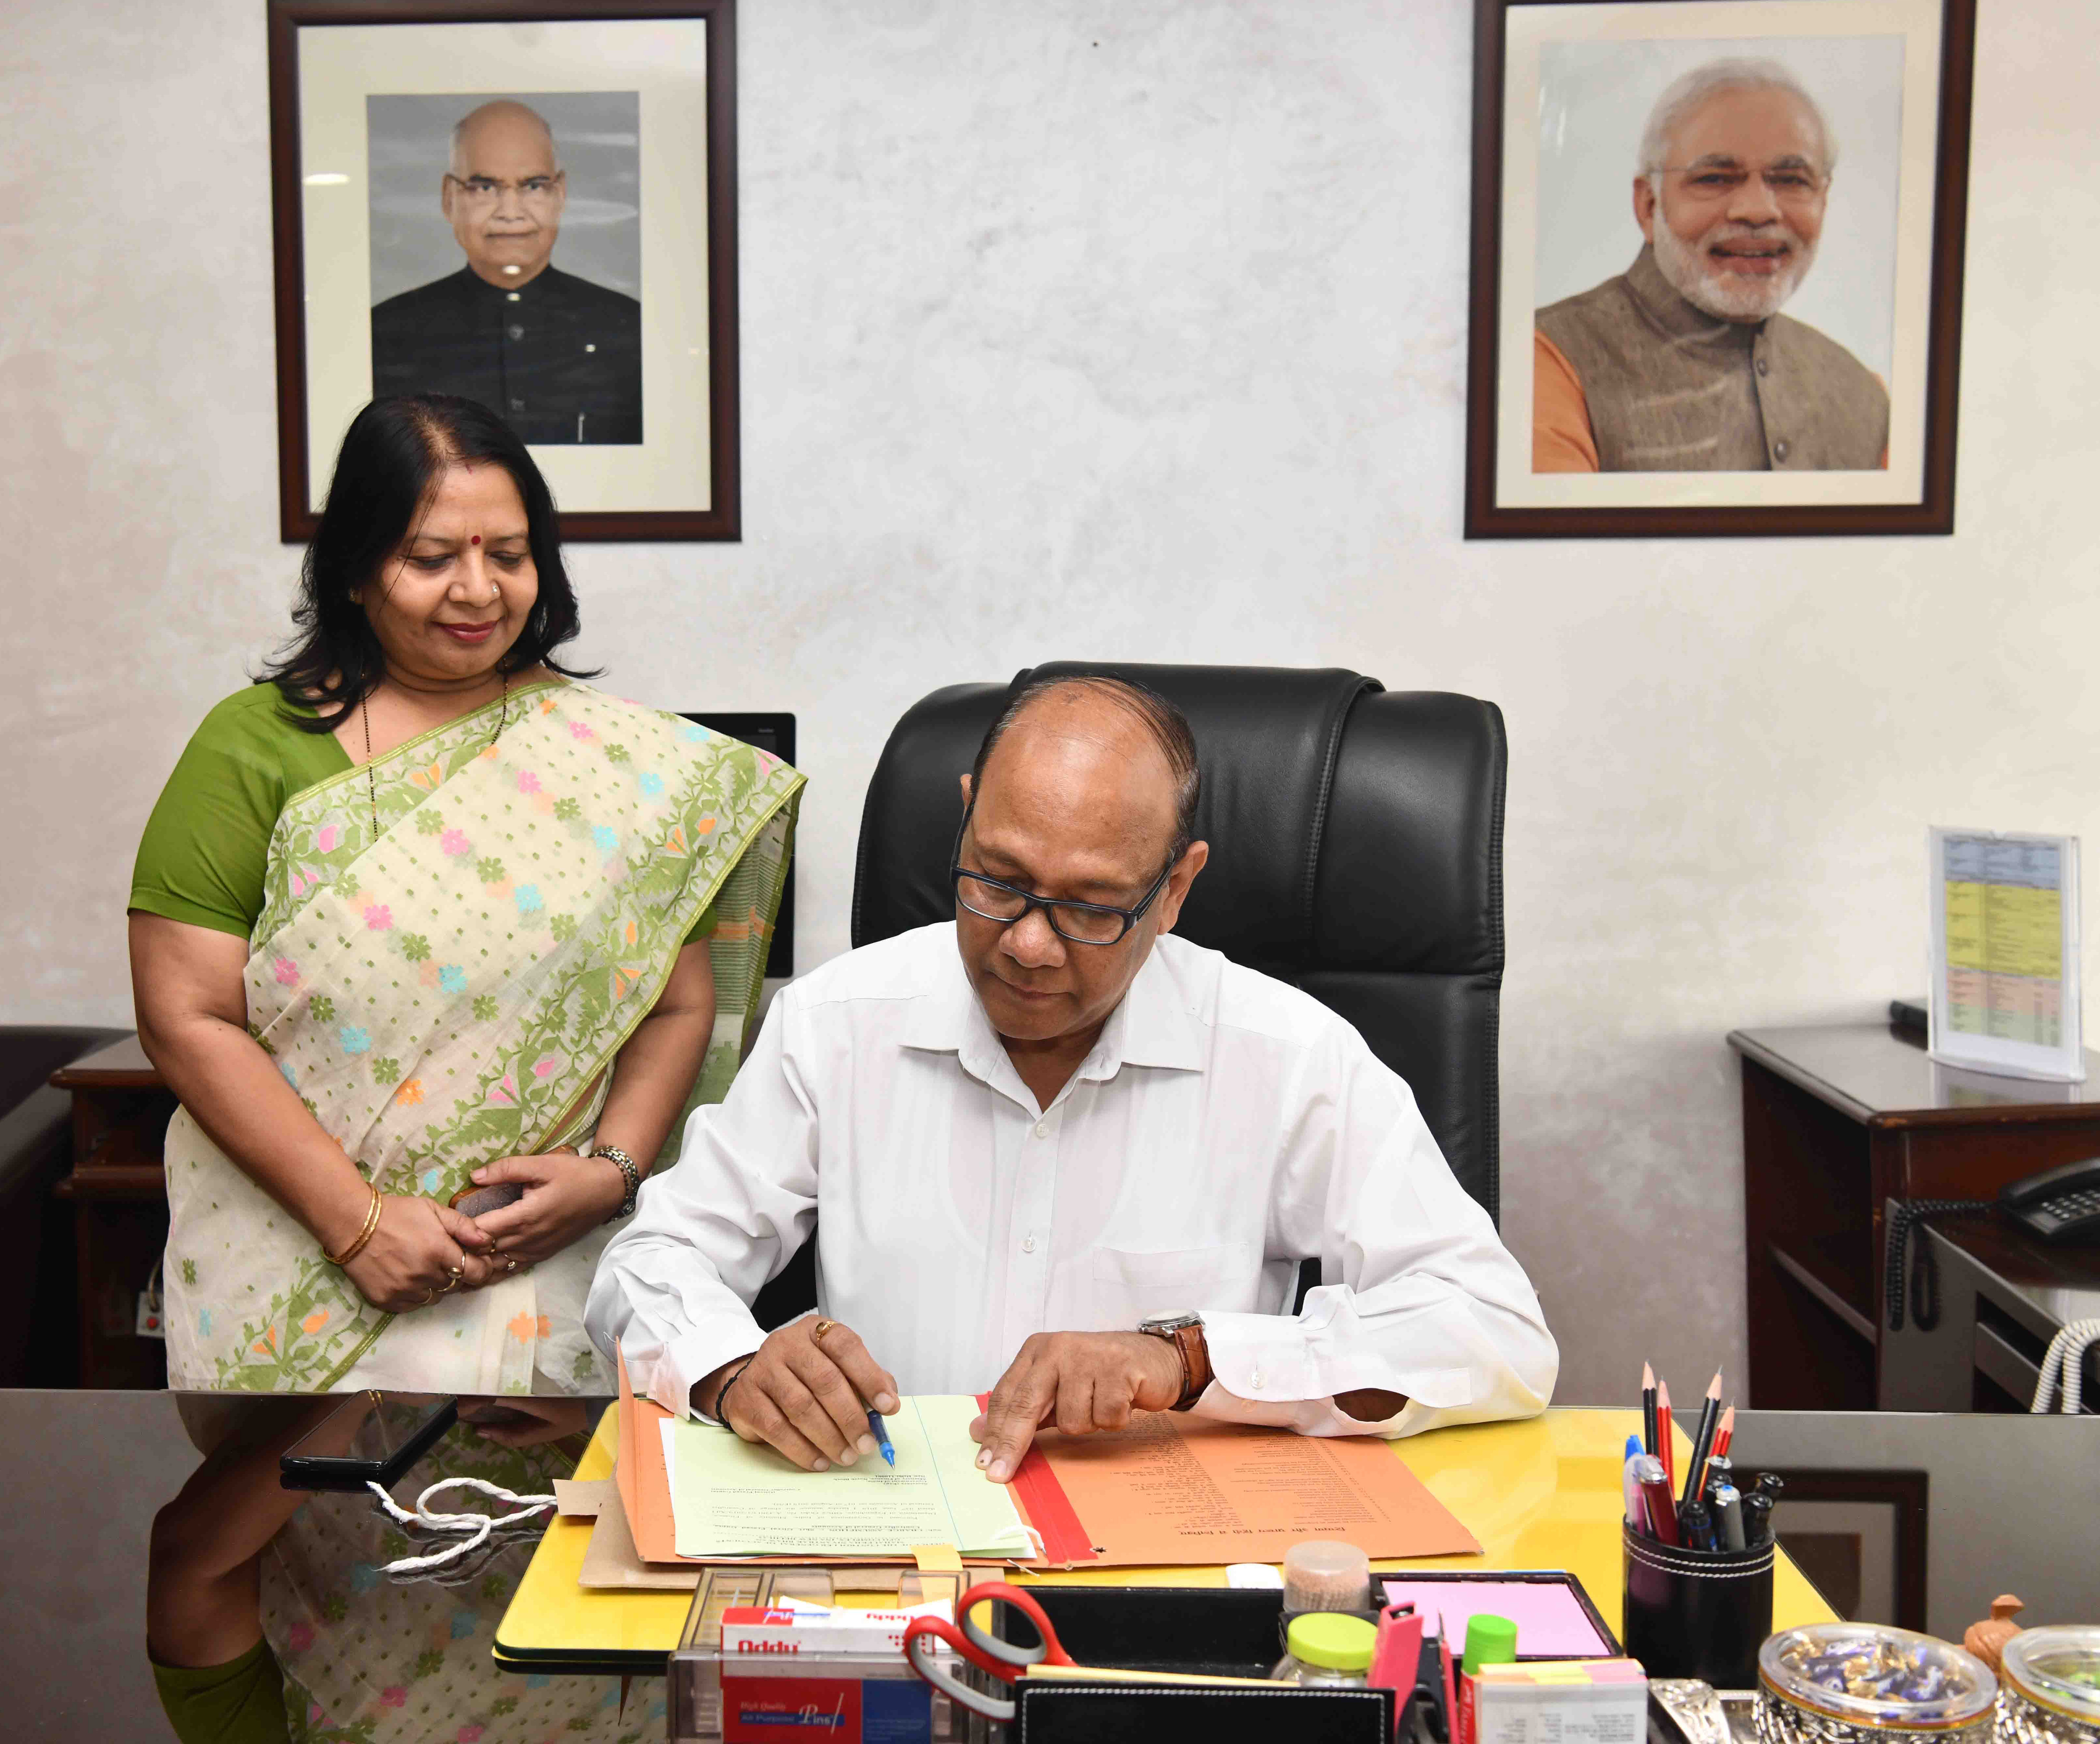 Shri Girraj Prasad Gupta takes over as the New Controller General of Accounts (CGA), Department of Expenditure, Ministry of Finance, in New Delhi on August 01, 2019.